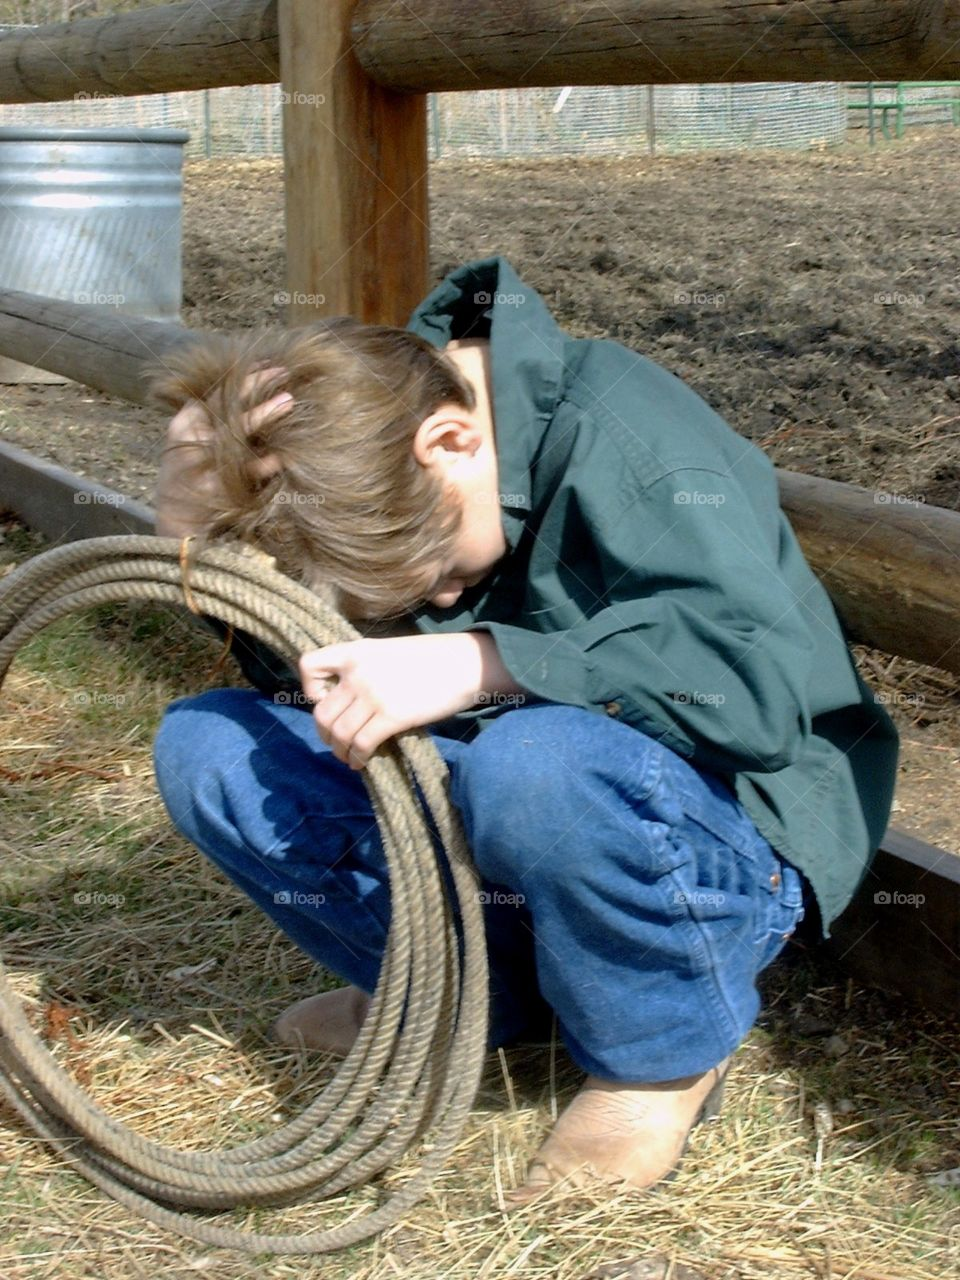 This is a photo of a young boy sitting outside of a horse pen, with a lasso in his hand and his head down looking discouraged.